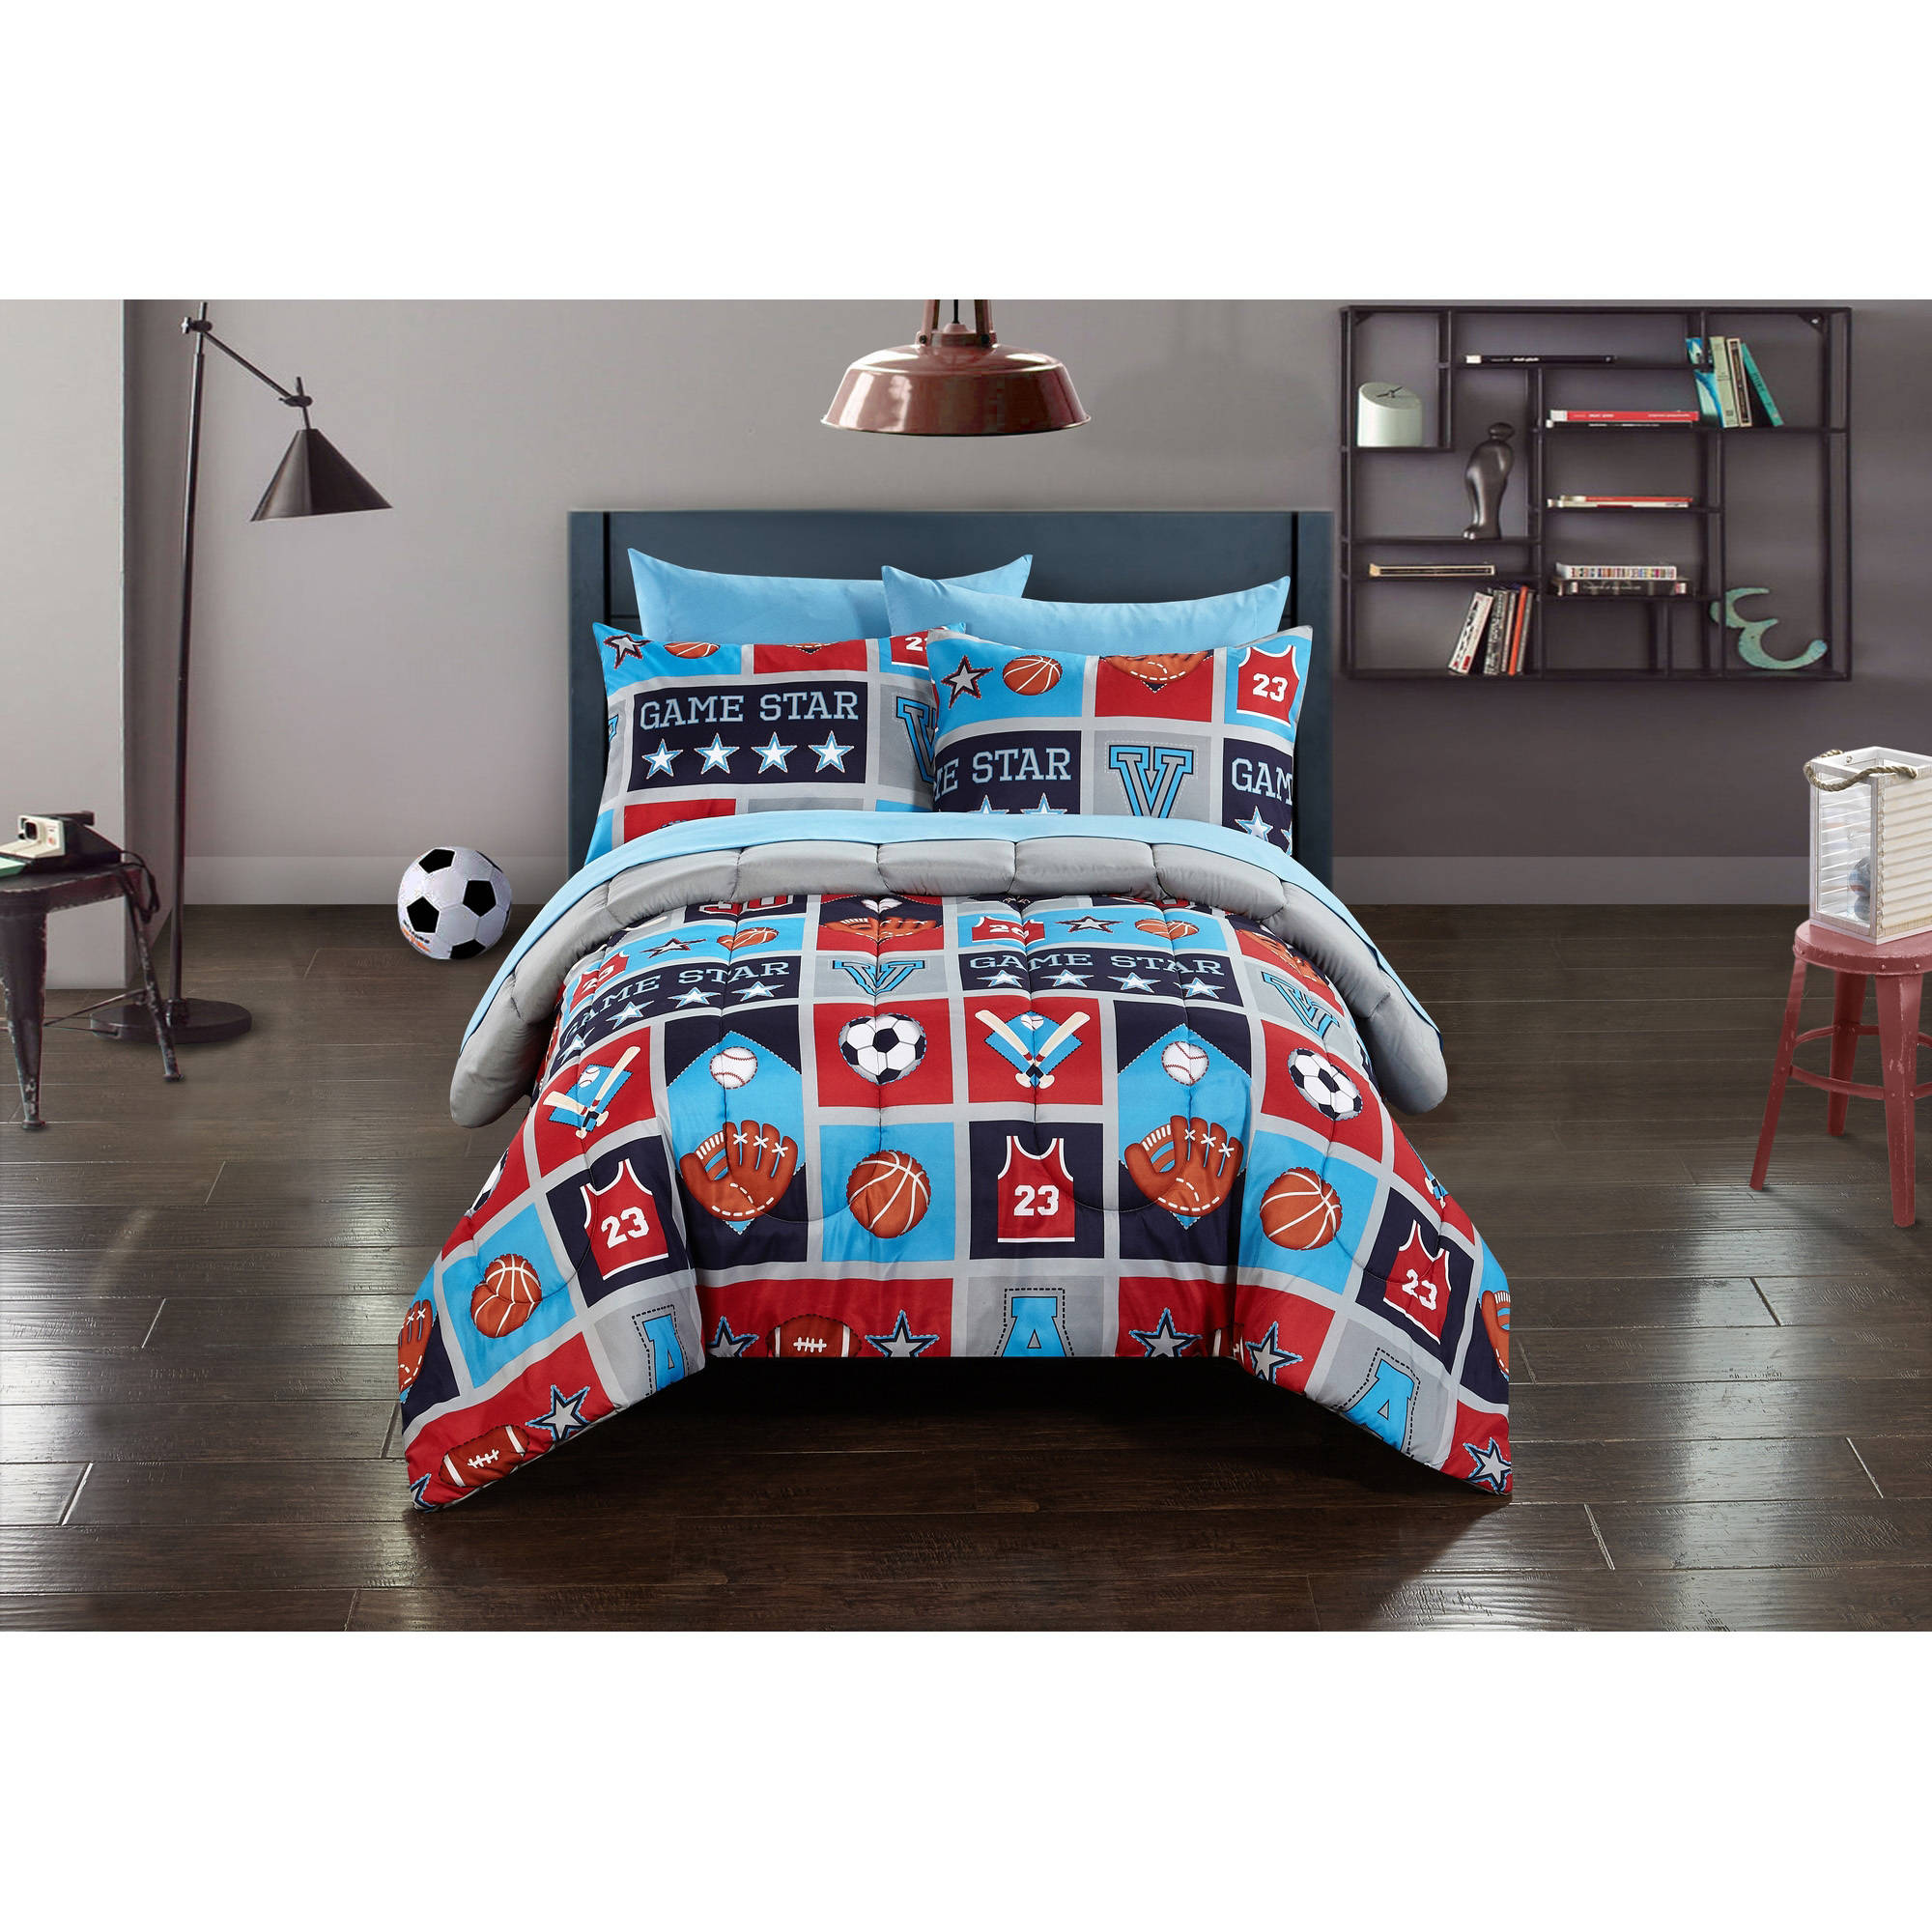 Mainstays Kids Atheletics Bed in a Bag Bedding Set